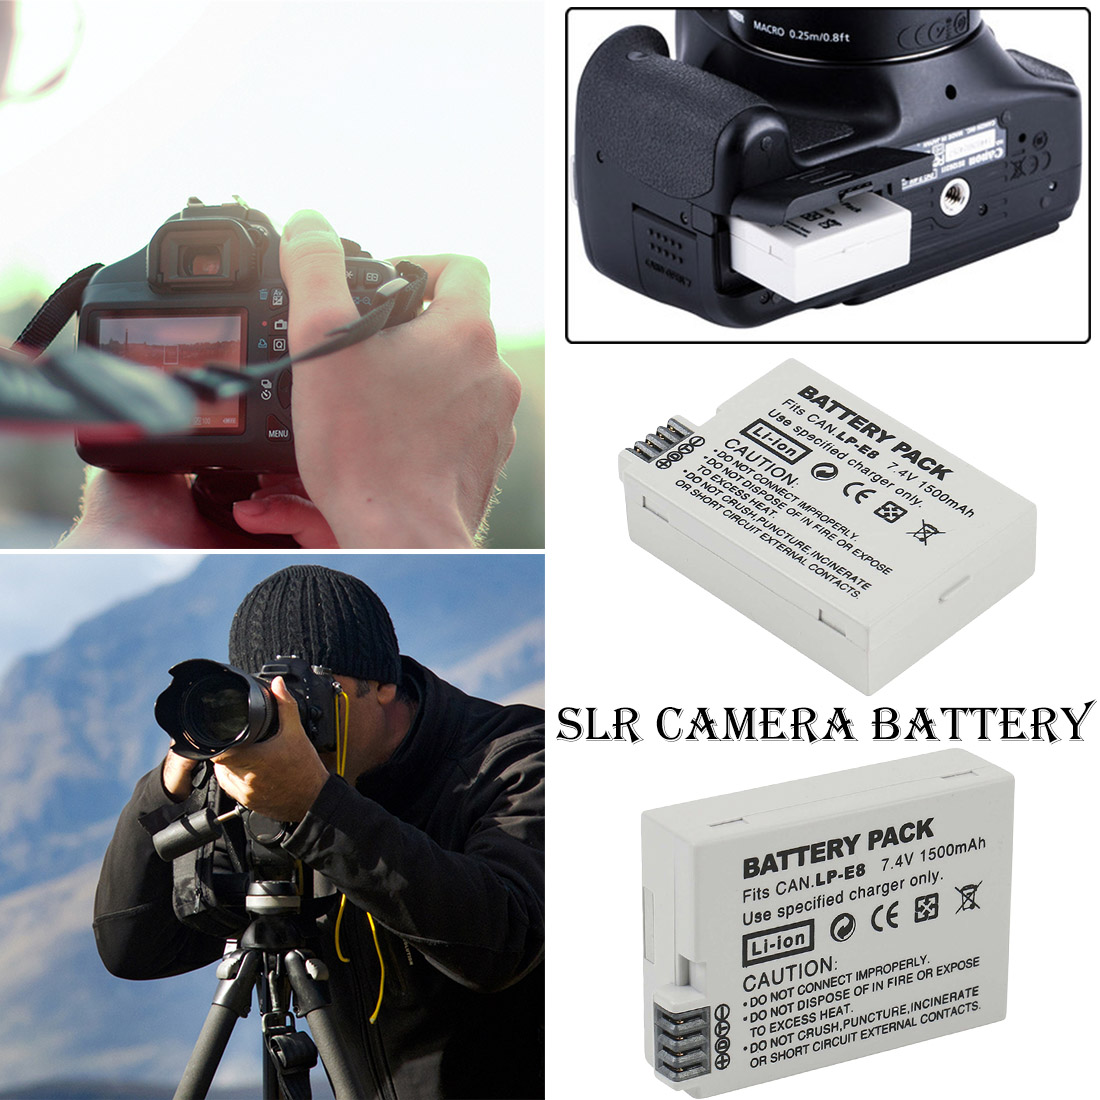 1Pcs 7.4V 1500mah LP-E8 LP E8 LPE8 Digital Camera <font><b>Battery</b></font> For <font><b>Canon</b></font> EOS 600D 650D 550D <font><b>700D</b></font> T4i T5i for Rebel T2i DSLR Camera image